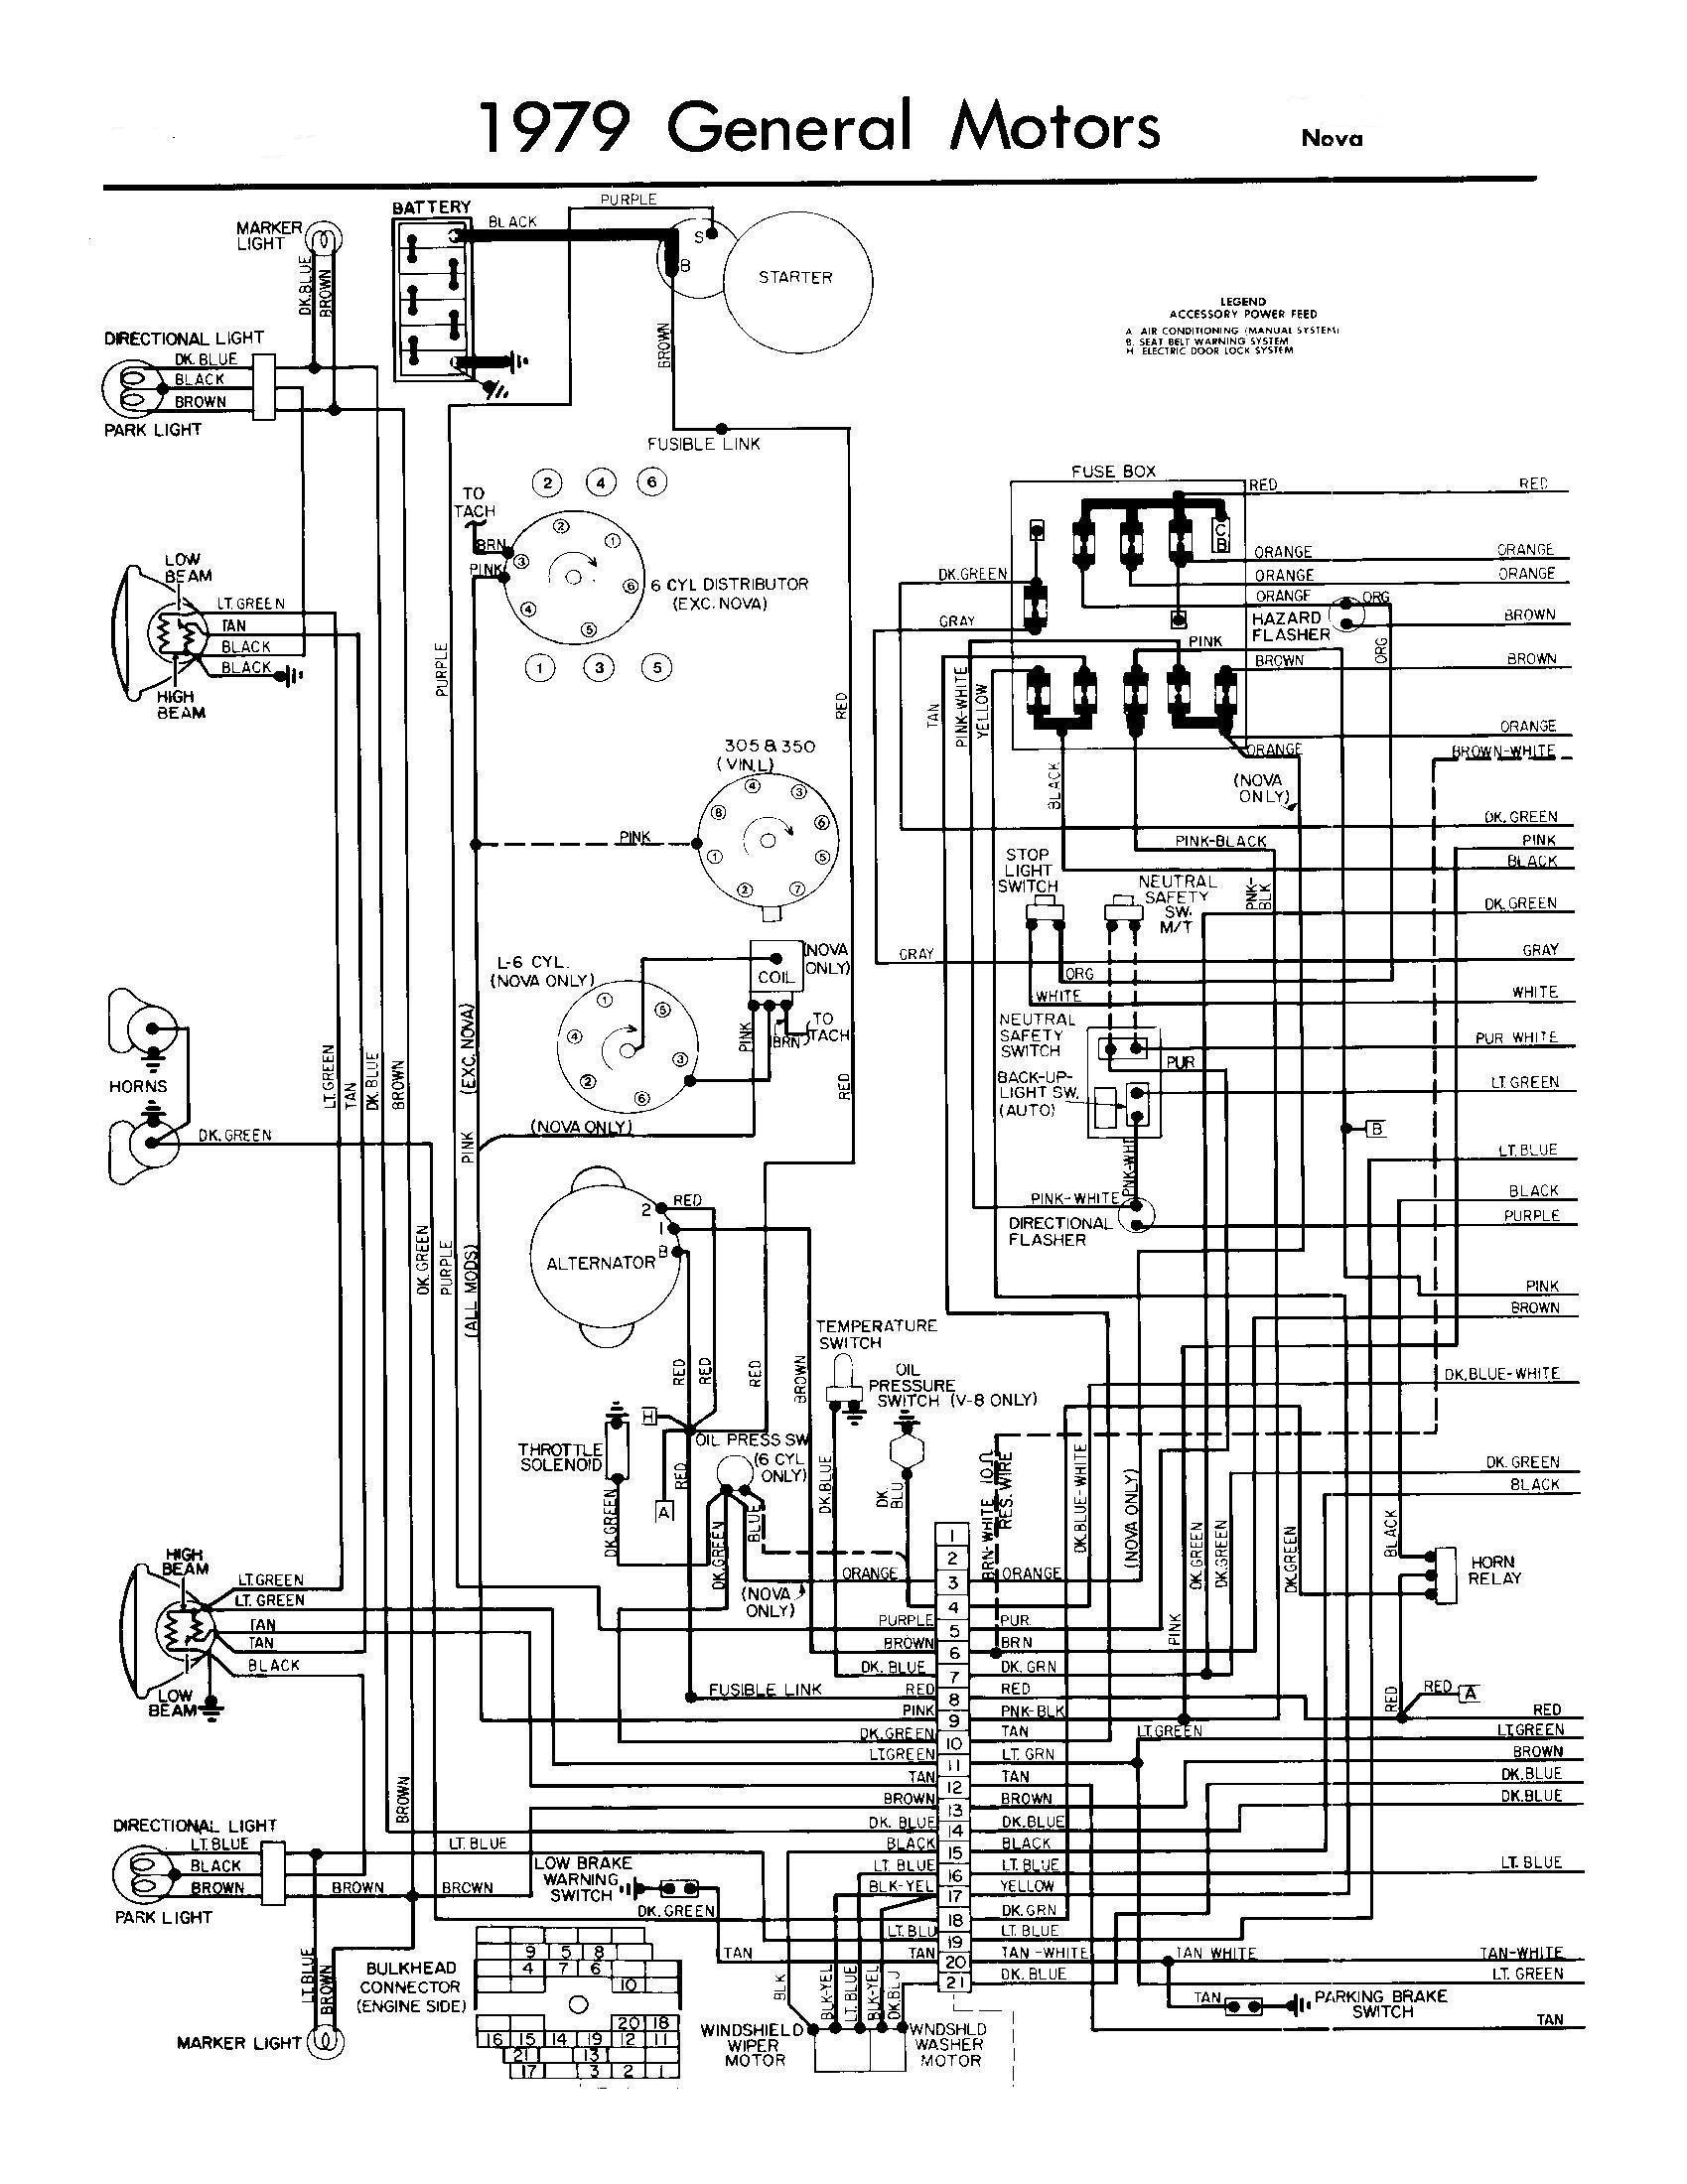 1979 chevy pickup radio wiring diagram